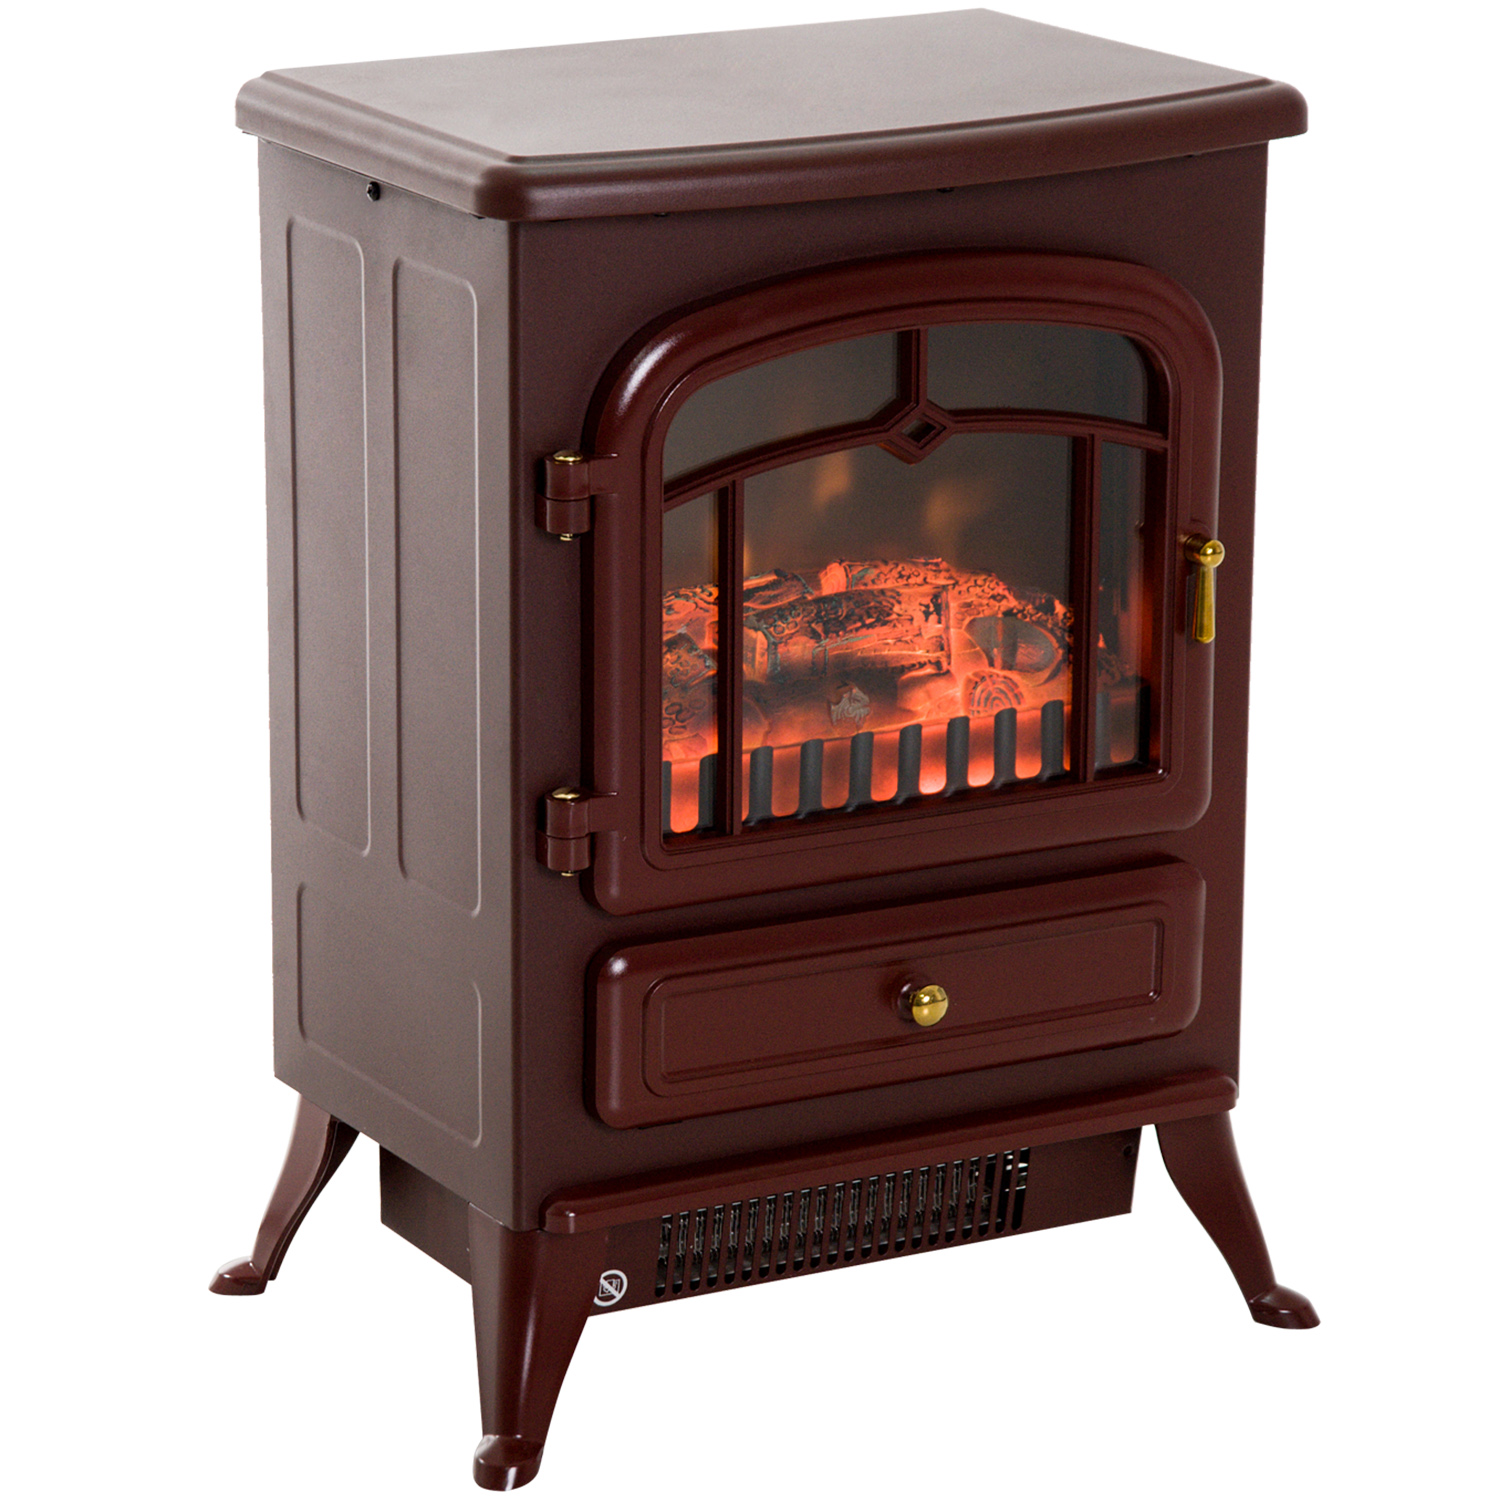 "HOMCOM 16"" 1500 Watt Free Standing Electric Wood Stove Fireplace Heater - Red Brown"